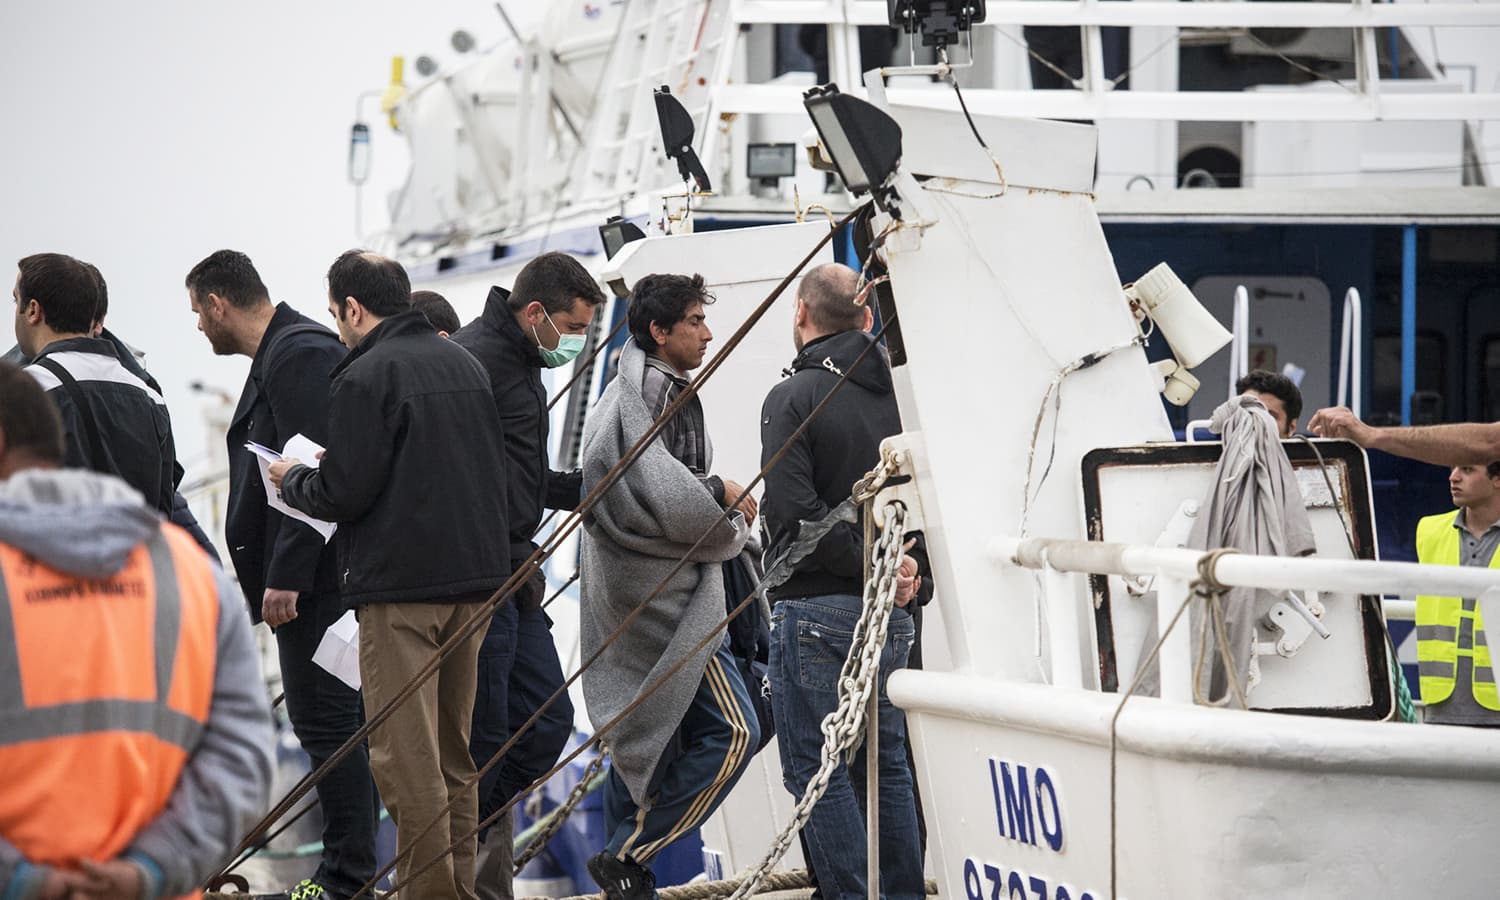 On April 8, 202 migrants were deported from Greece to Turkey, among them the biggest group was 130 Pakistanis, followed by 42 Afghans, the rest from Iran, Congo, Sri Lanka, Bangladesh and India.